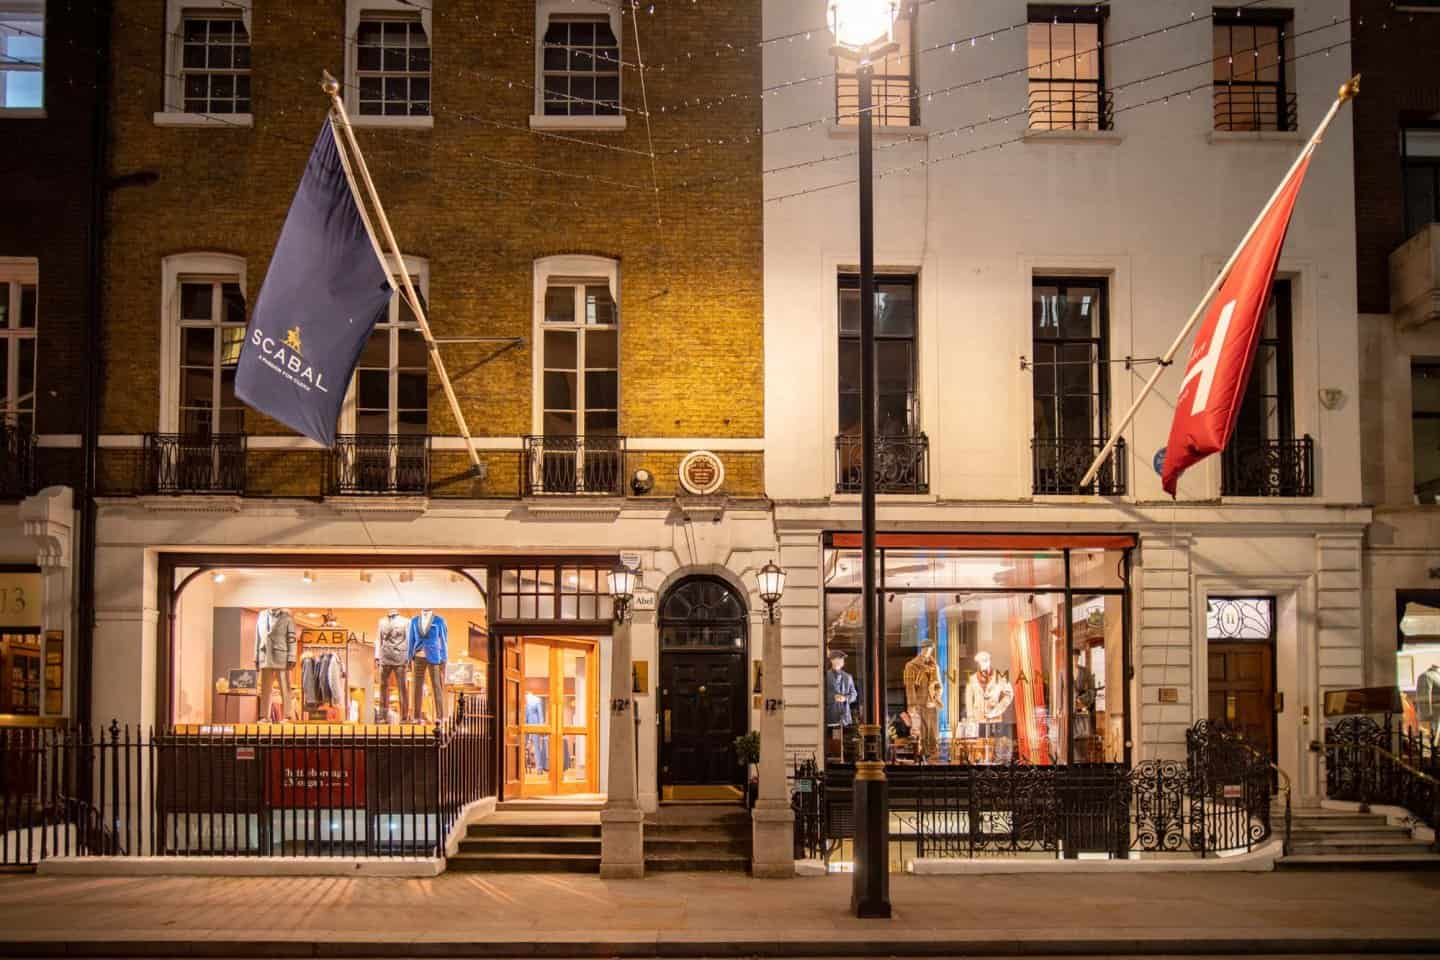 Two fine tailoring shops on Savile Row, a famous London street for shopping